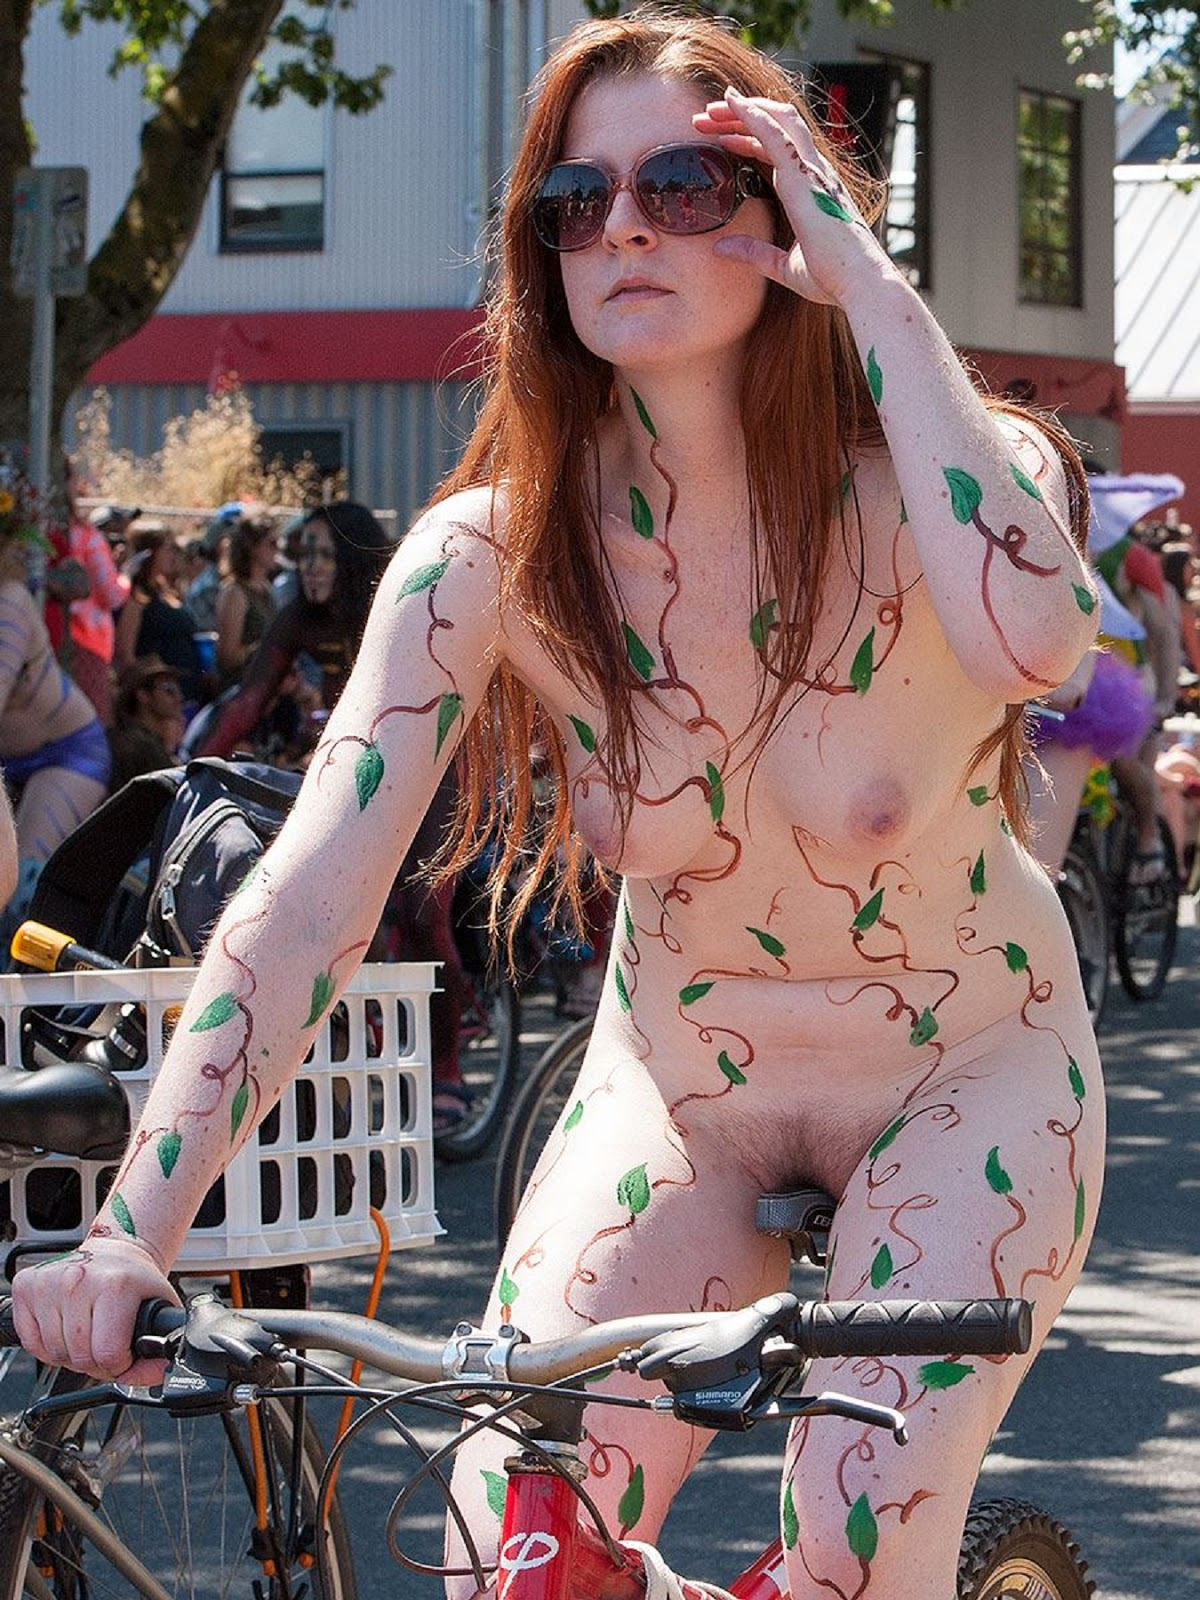 PUBLIC NUDITY PROJECT: Fremont Solstice Parade 2015